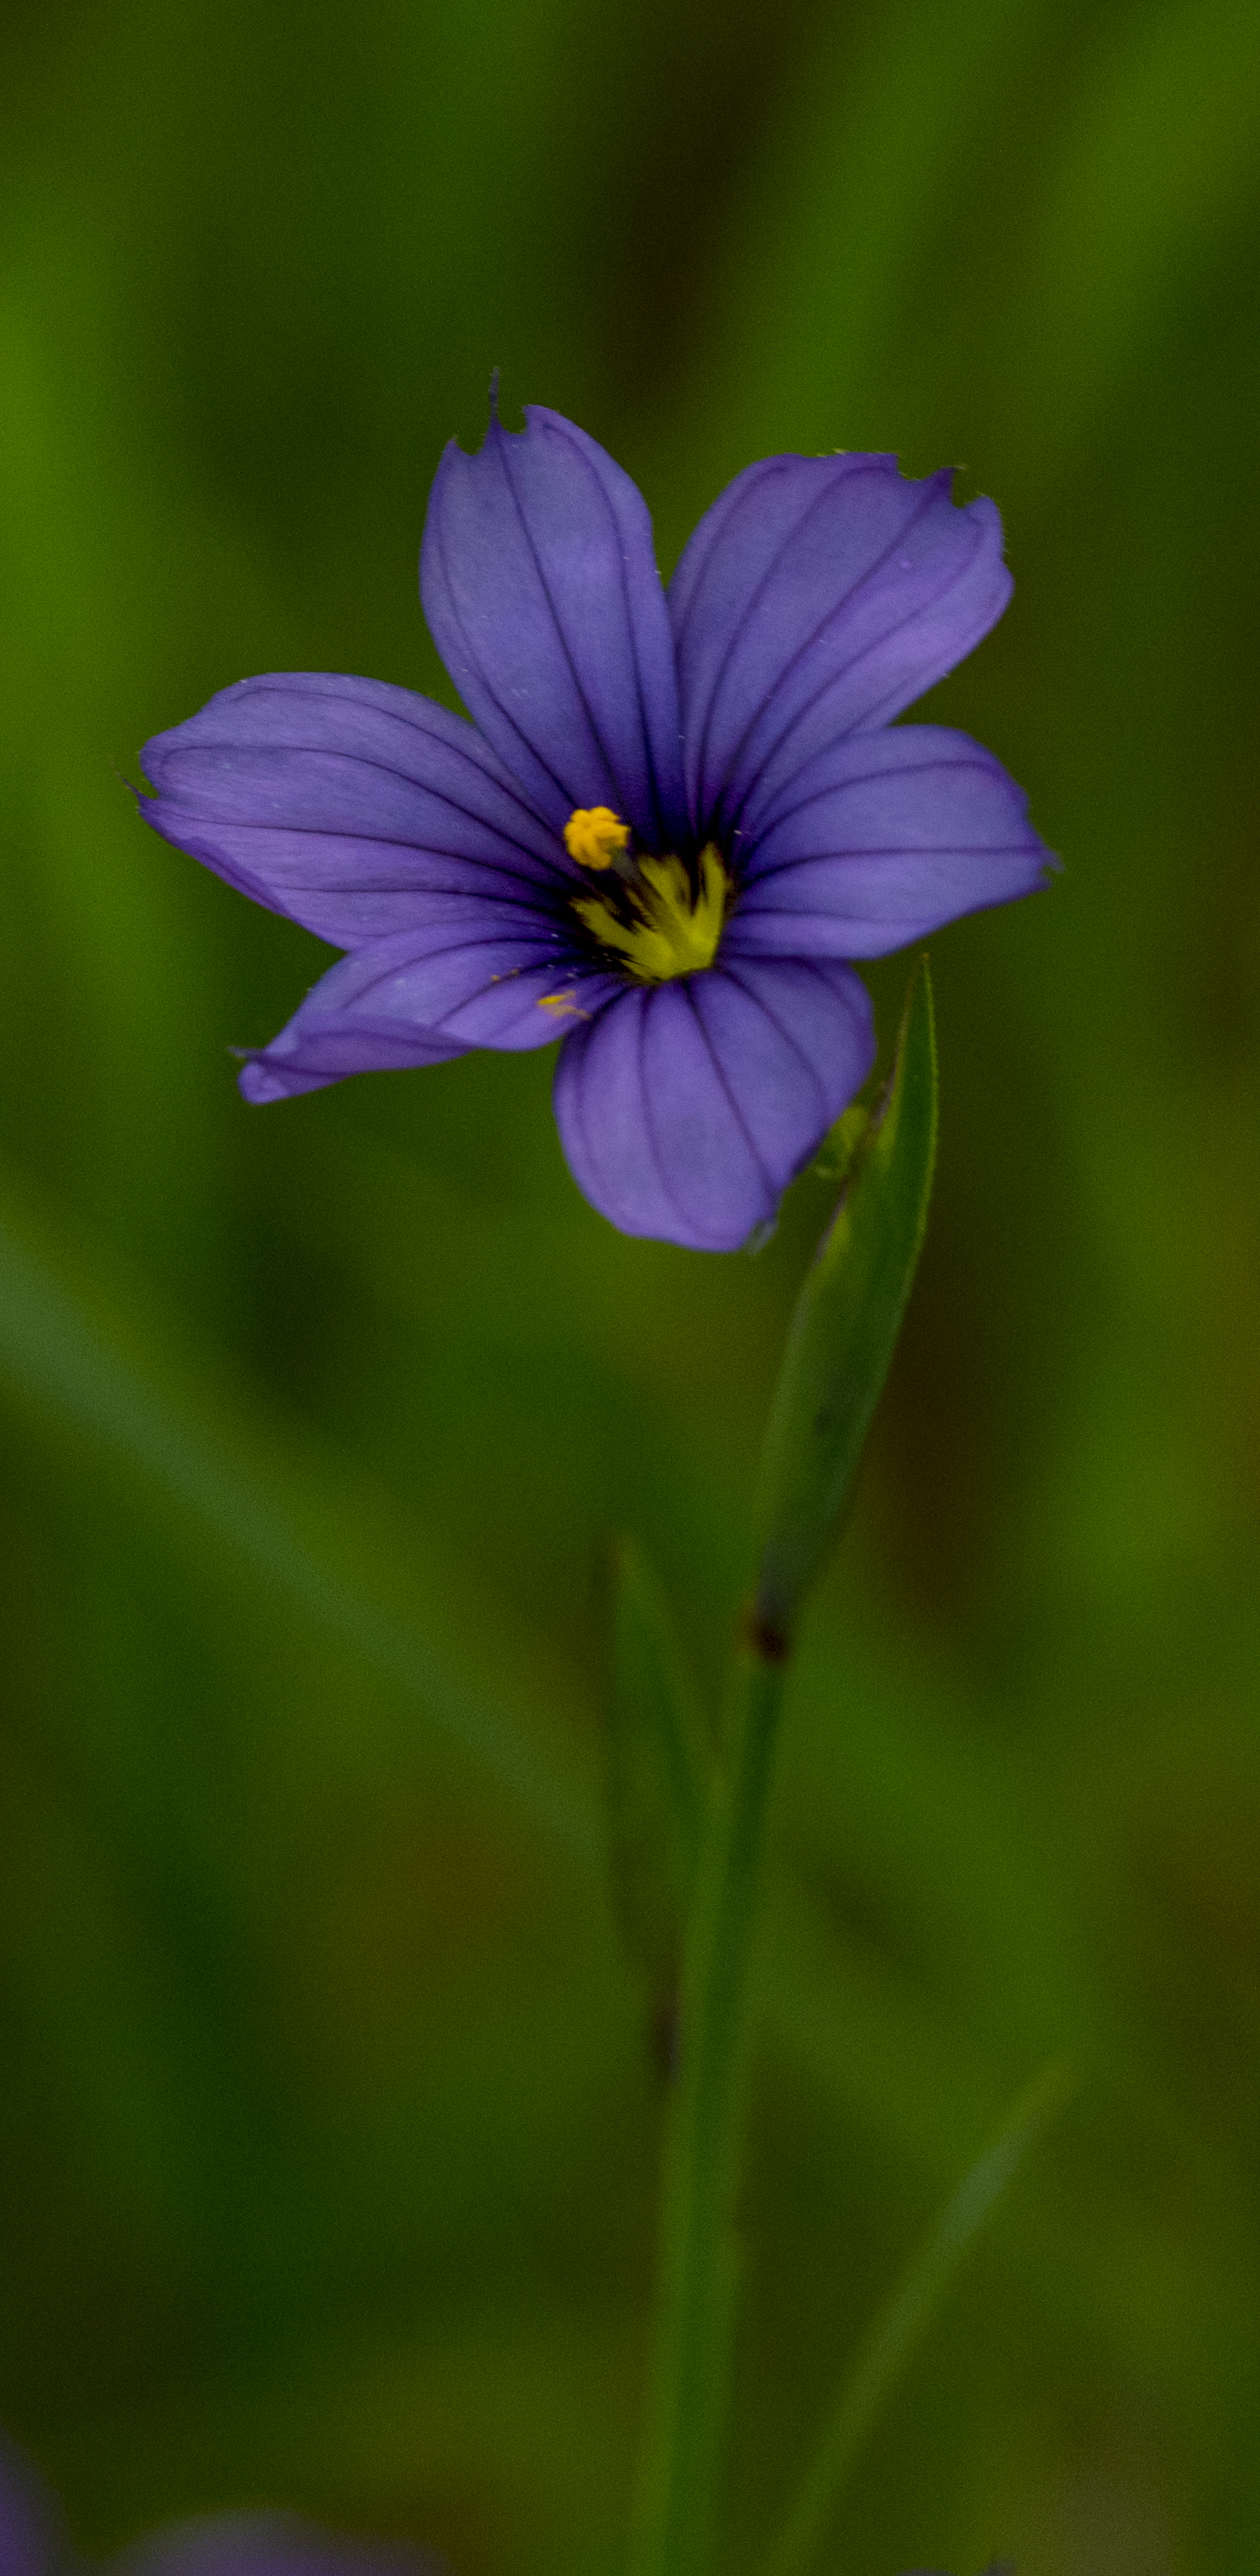 Blue Eyed Grass, Wildflower at Santa Teresa County Park, San Jose, California